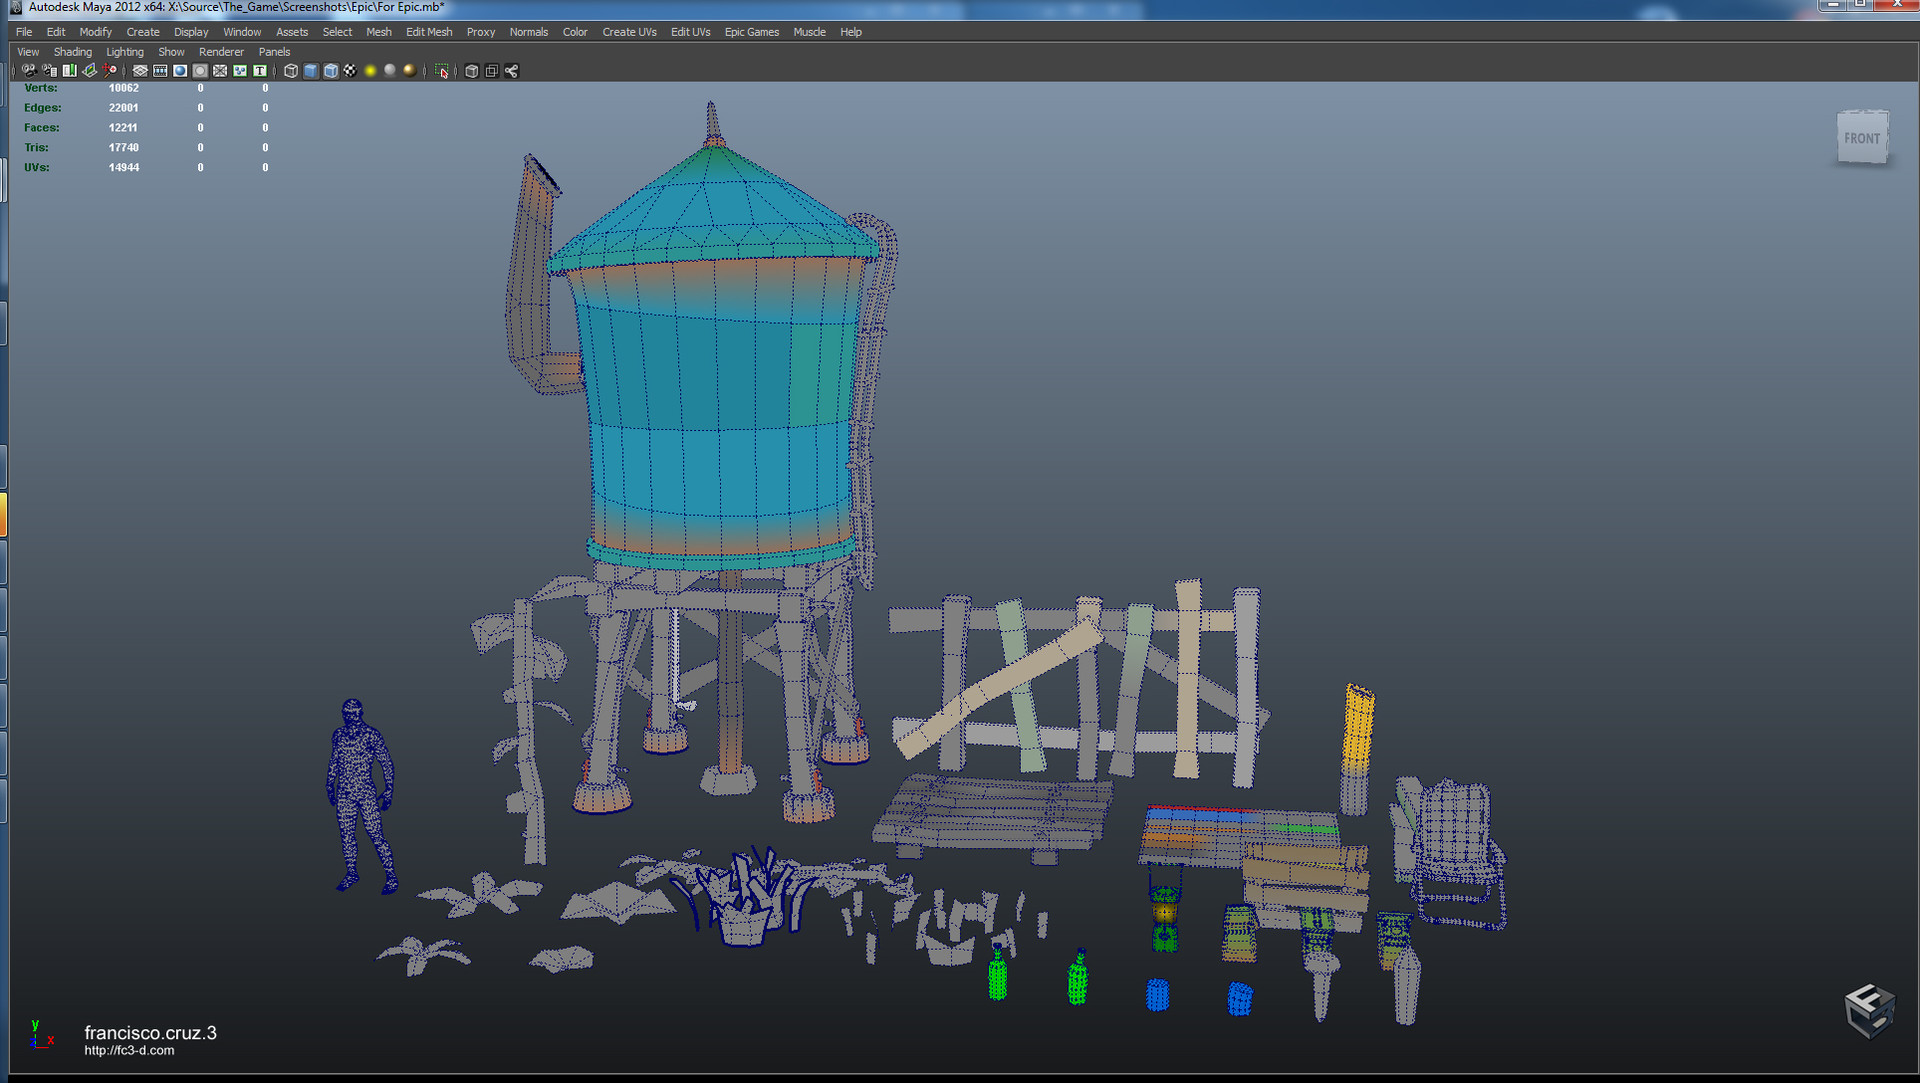 All assets as seen in Maya. Vertex coloring part of static mesh. Can be overridden in UE4 for more color variations.